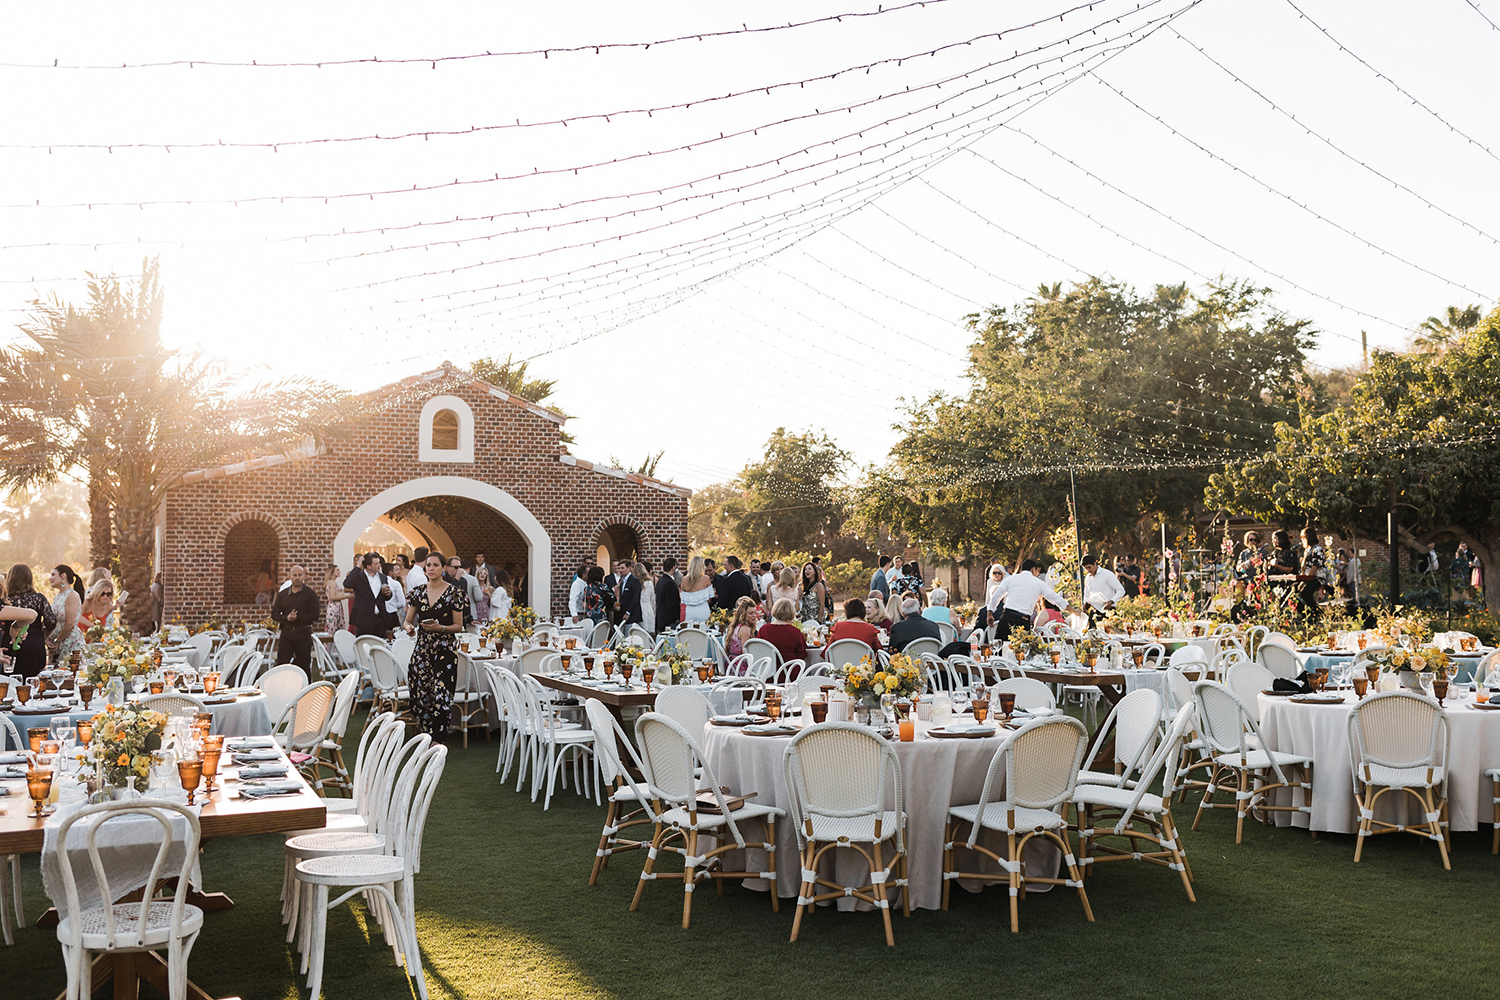 rehearsal dinner venue - outdoors - string light draping